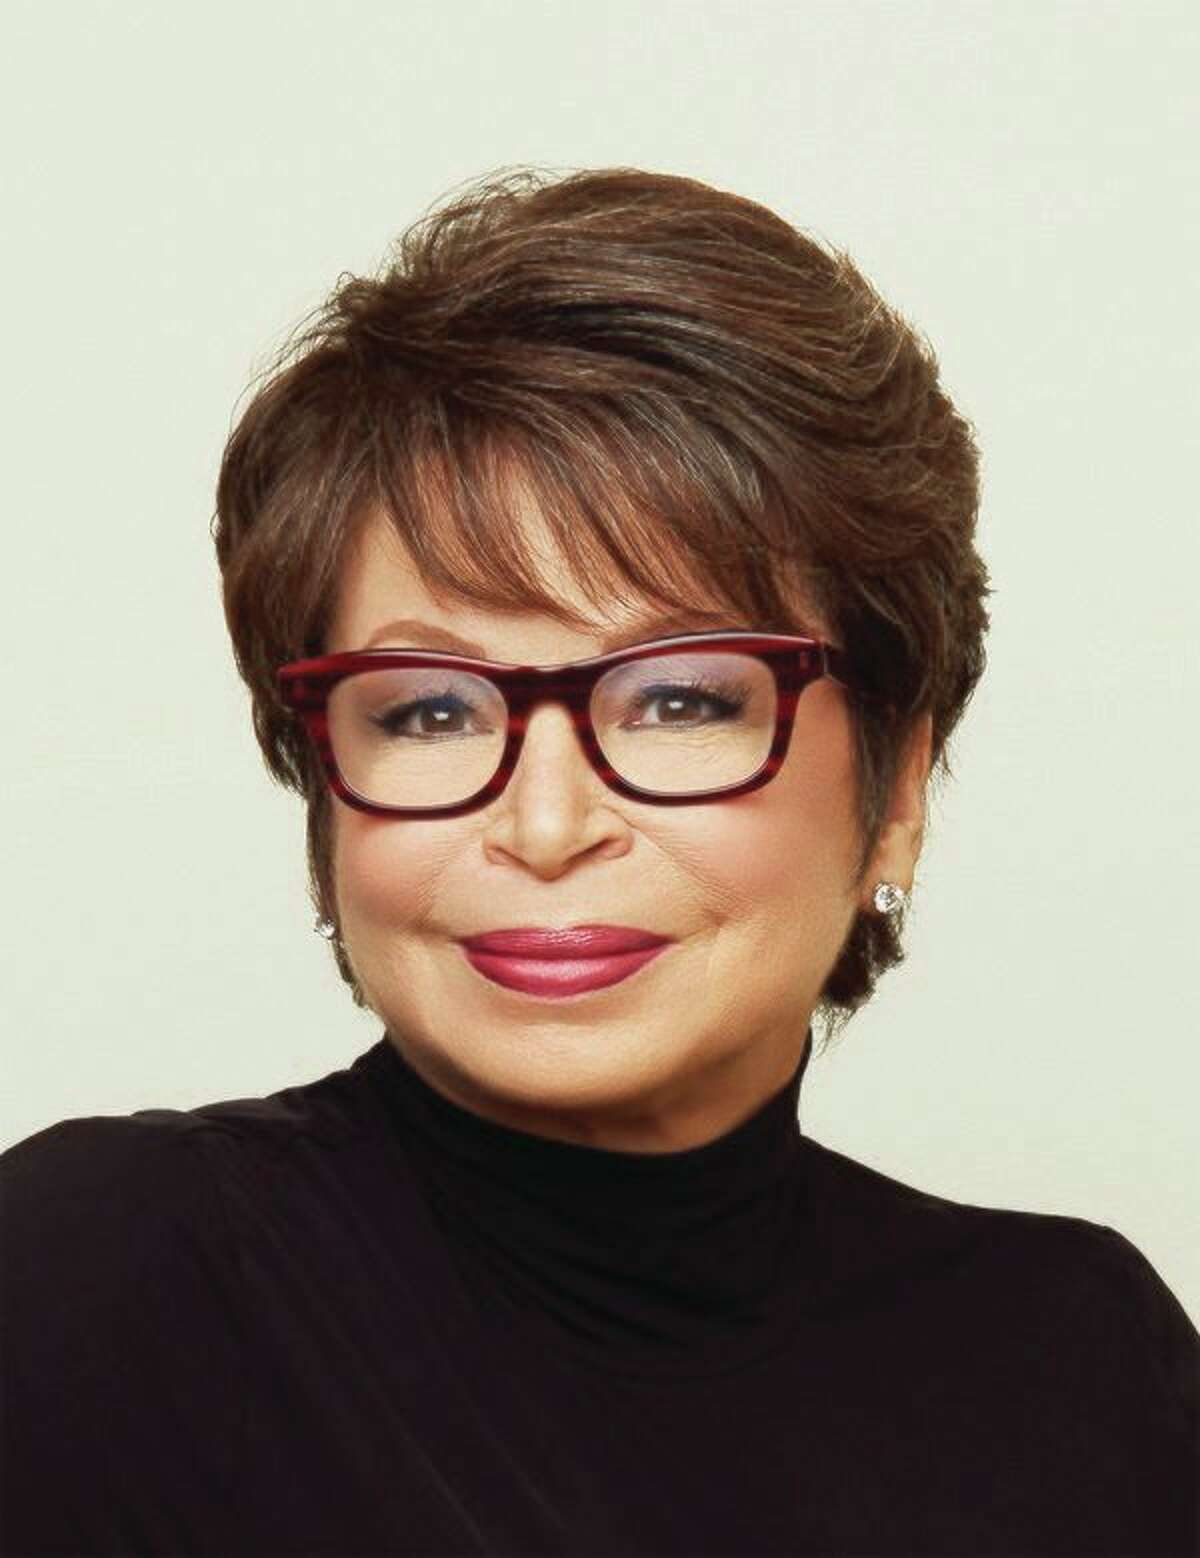 Crosscut Festival When: Friday - Saturday Where: Seattle University, 901 12th Ave., Seattle What: Over 60 speakers -- including the pictured Valerie Jarrett, a senior advisor to former President Barack Obama -- will be on over 40 panels discussing various aspects of media, immigration, politics, criminal justice and more. Other featured speakers will include U.S. Rep. Pramila Jayapal, Seahawks player Doug Baldwin, New York Times columnist Jamelle Bouie and rapper Macklemore.